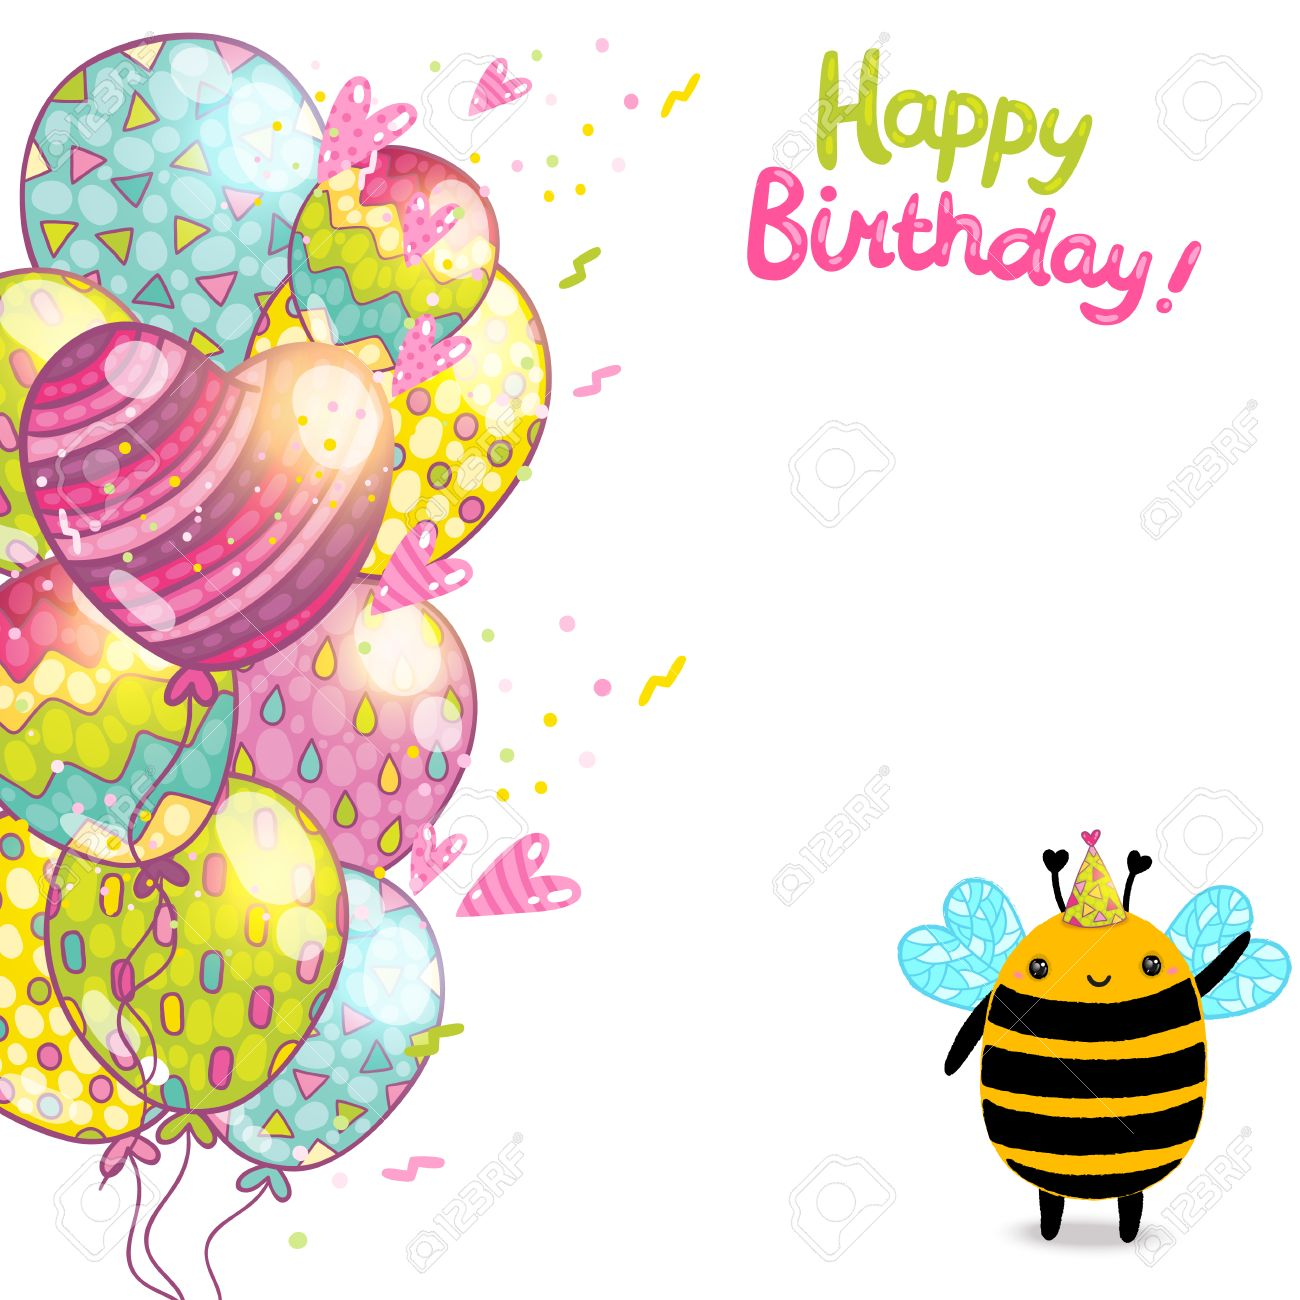 Happy Birthday Templates Free unique – Happy Birthday Card Template Free Download